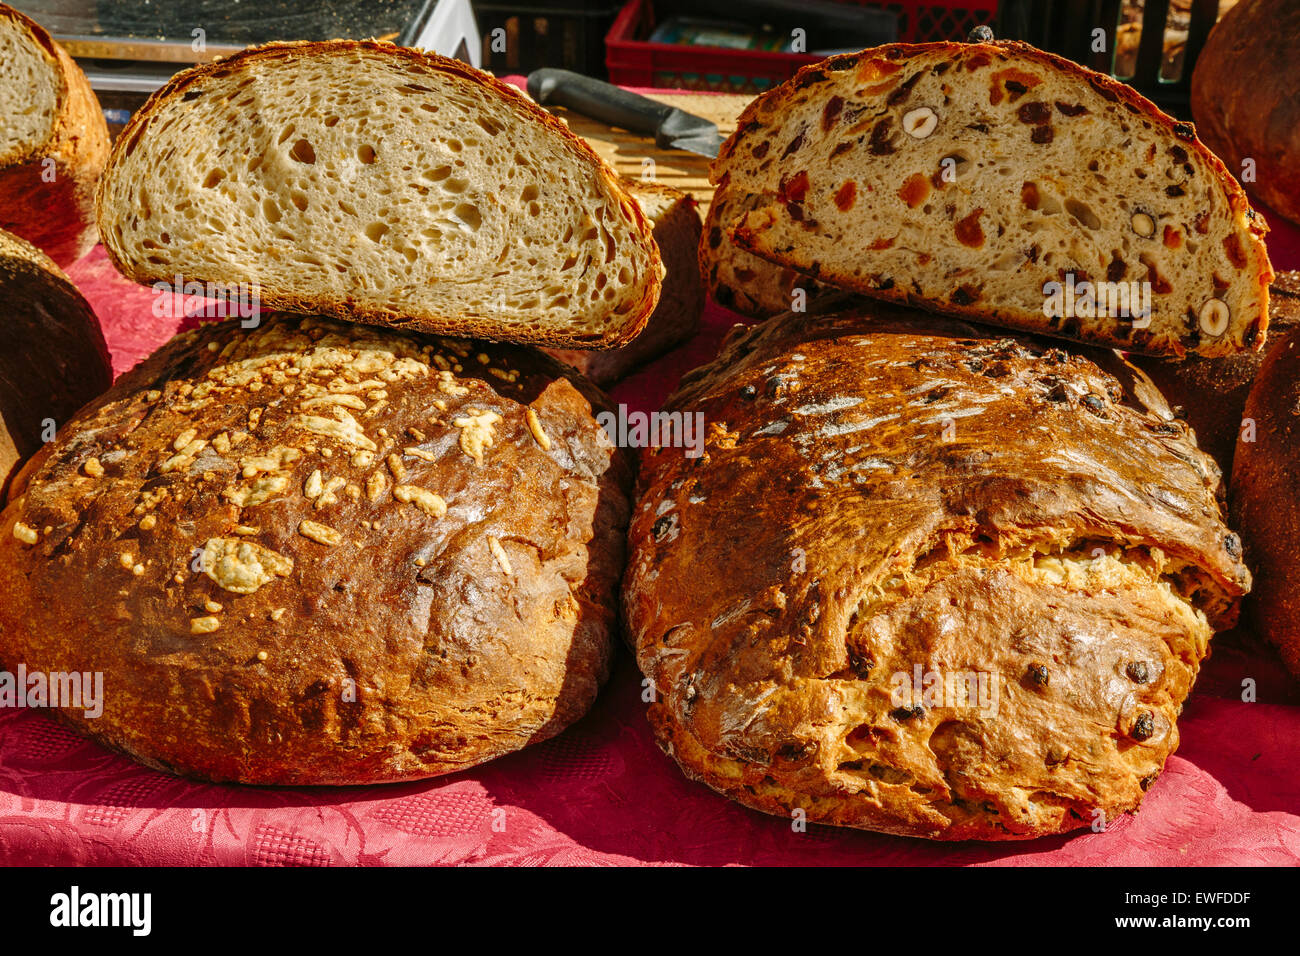 Bread for sale at Farmer's Market, Bergs Bazaar, Riga Latvia - Stock Image